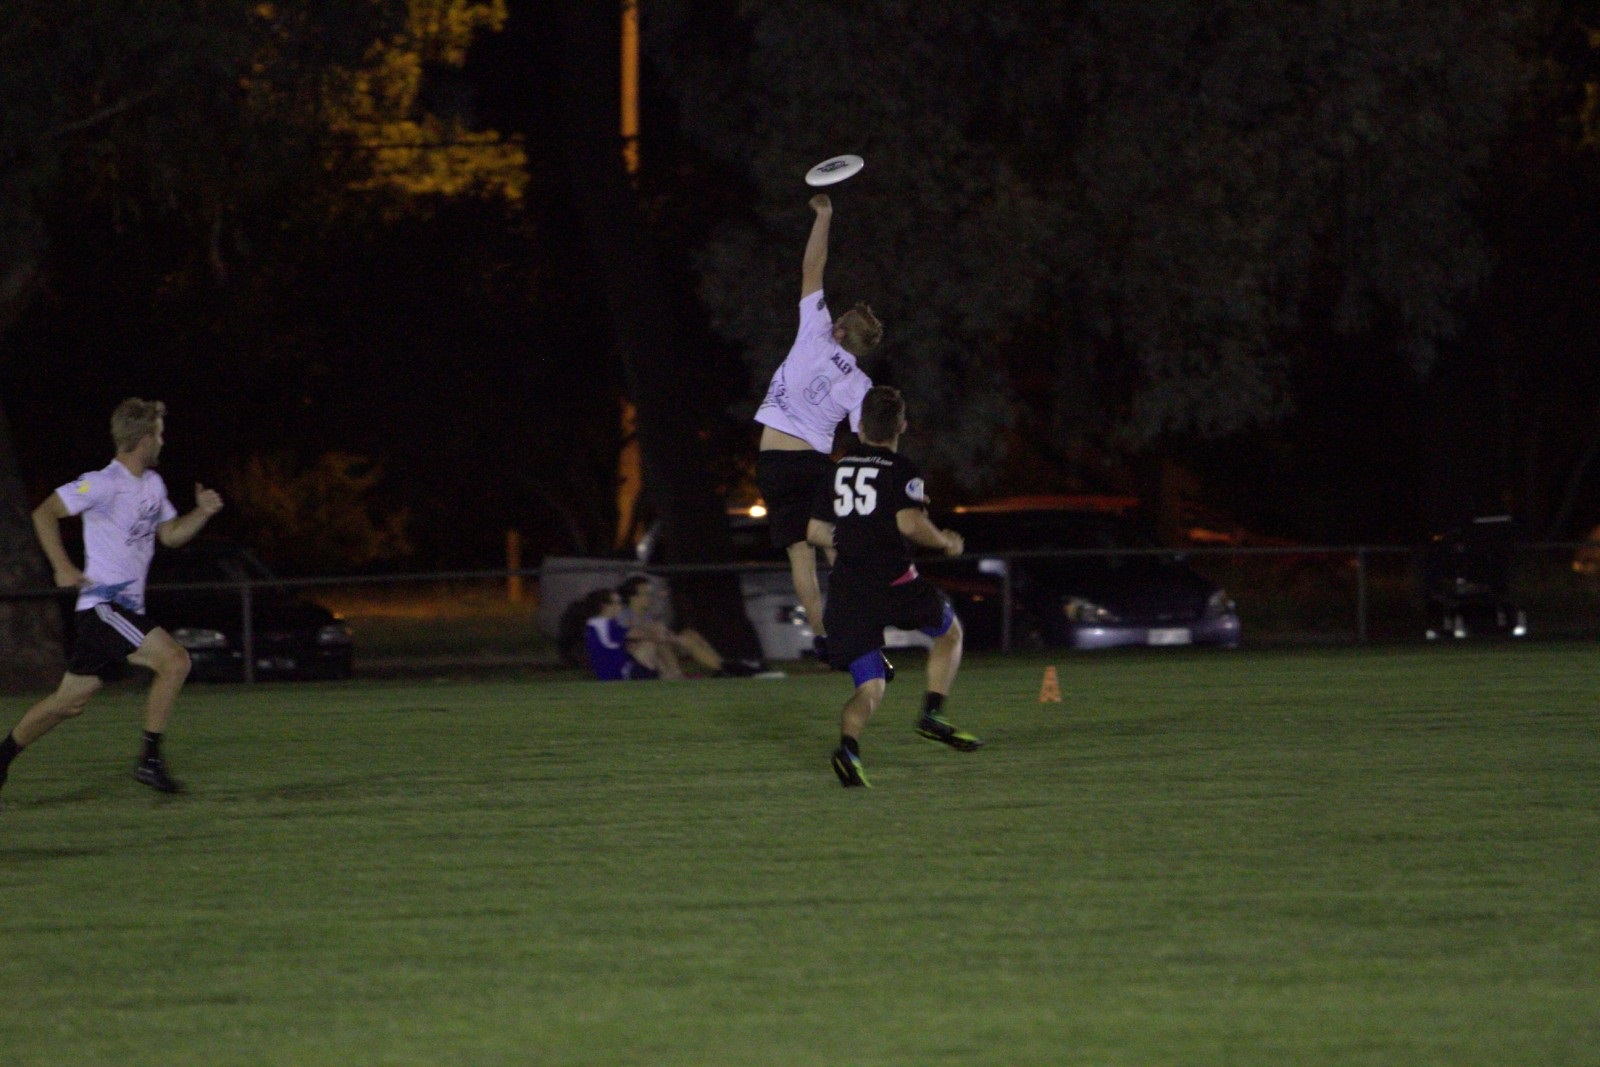 Canberra Ultimate